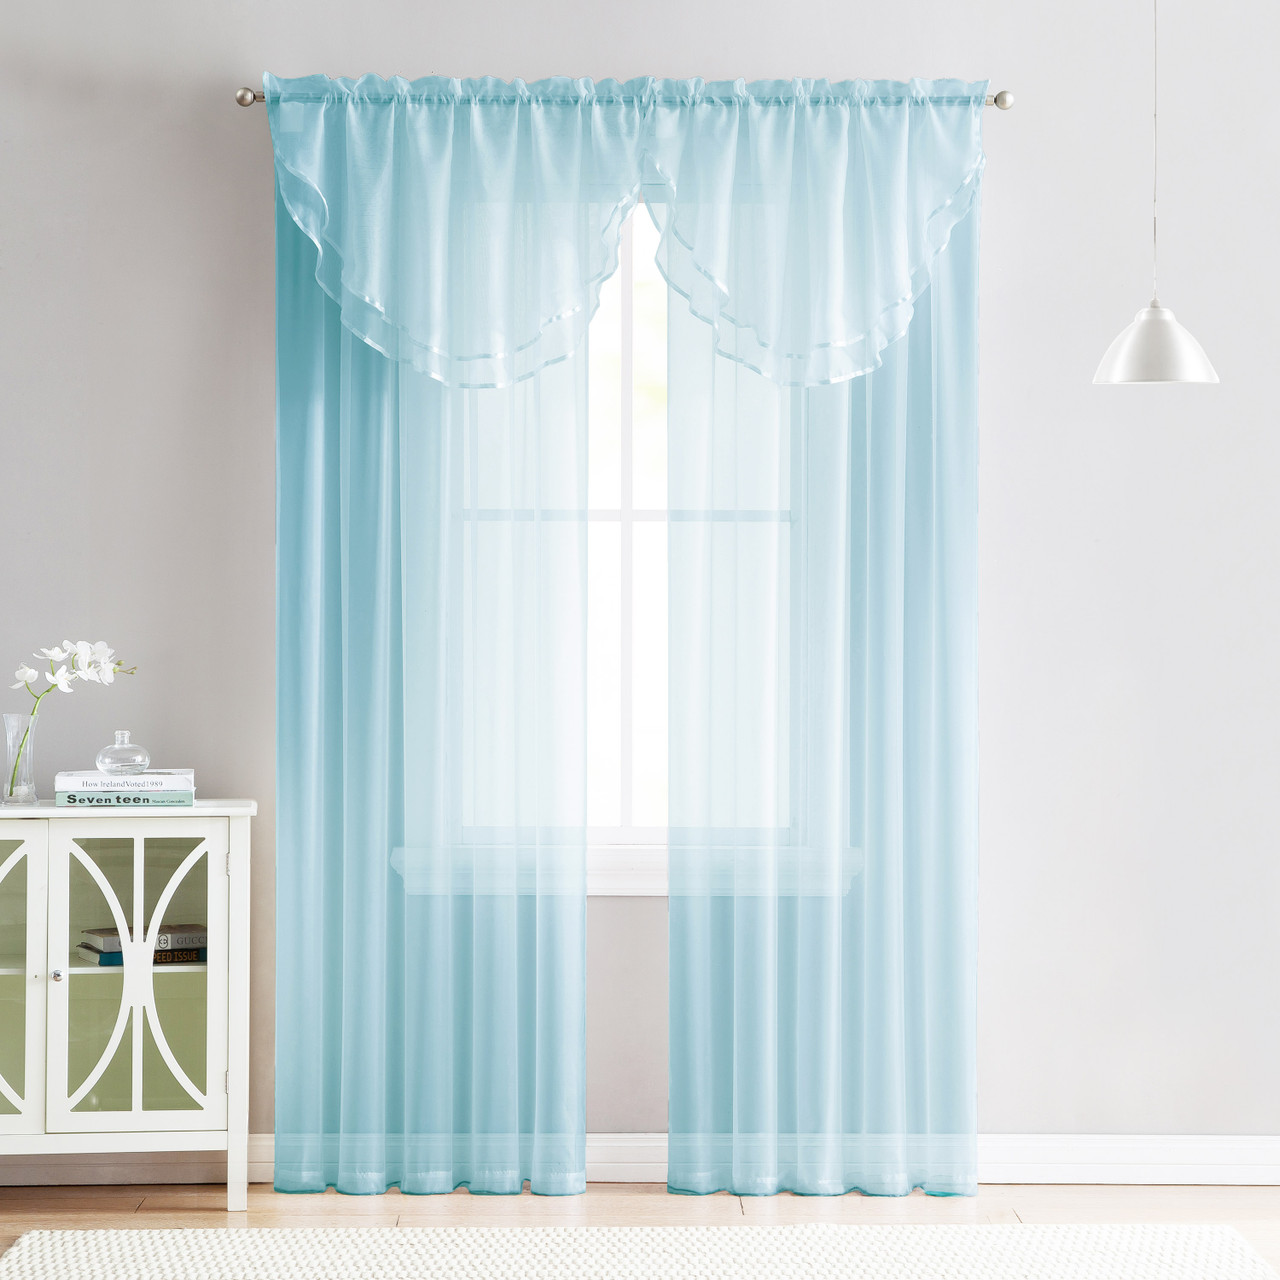 4 Piece Sheer Window Curtain Set For Living Room Dining Room Bay Windows 2 Voile Valance Curtains And 2 Panels 90 In Long Blue